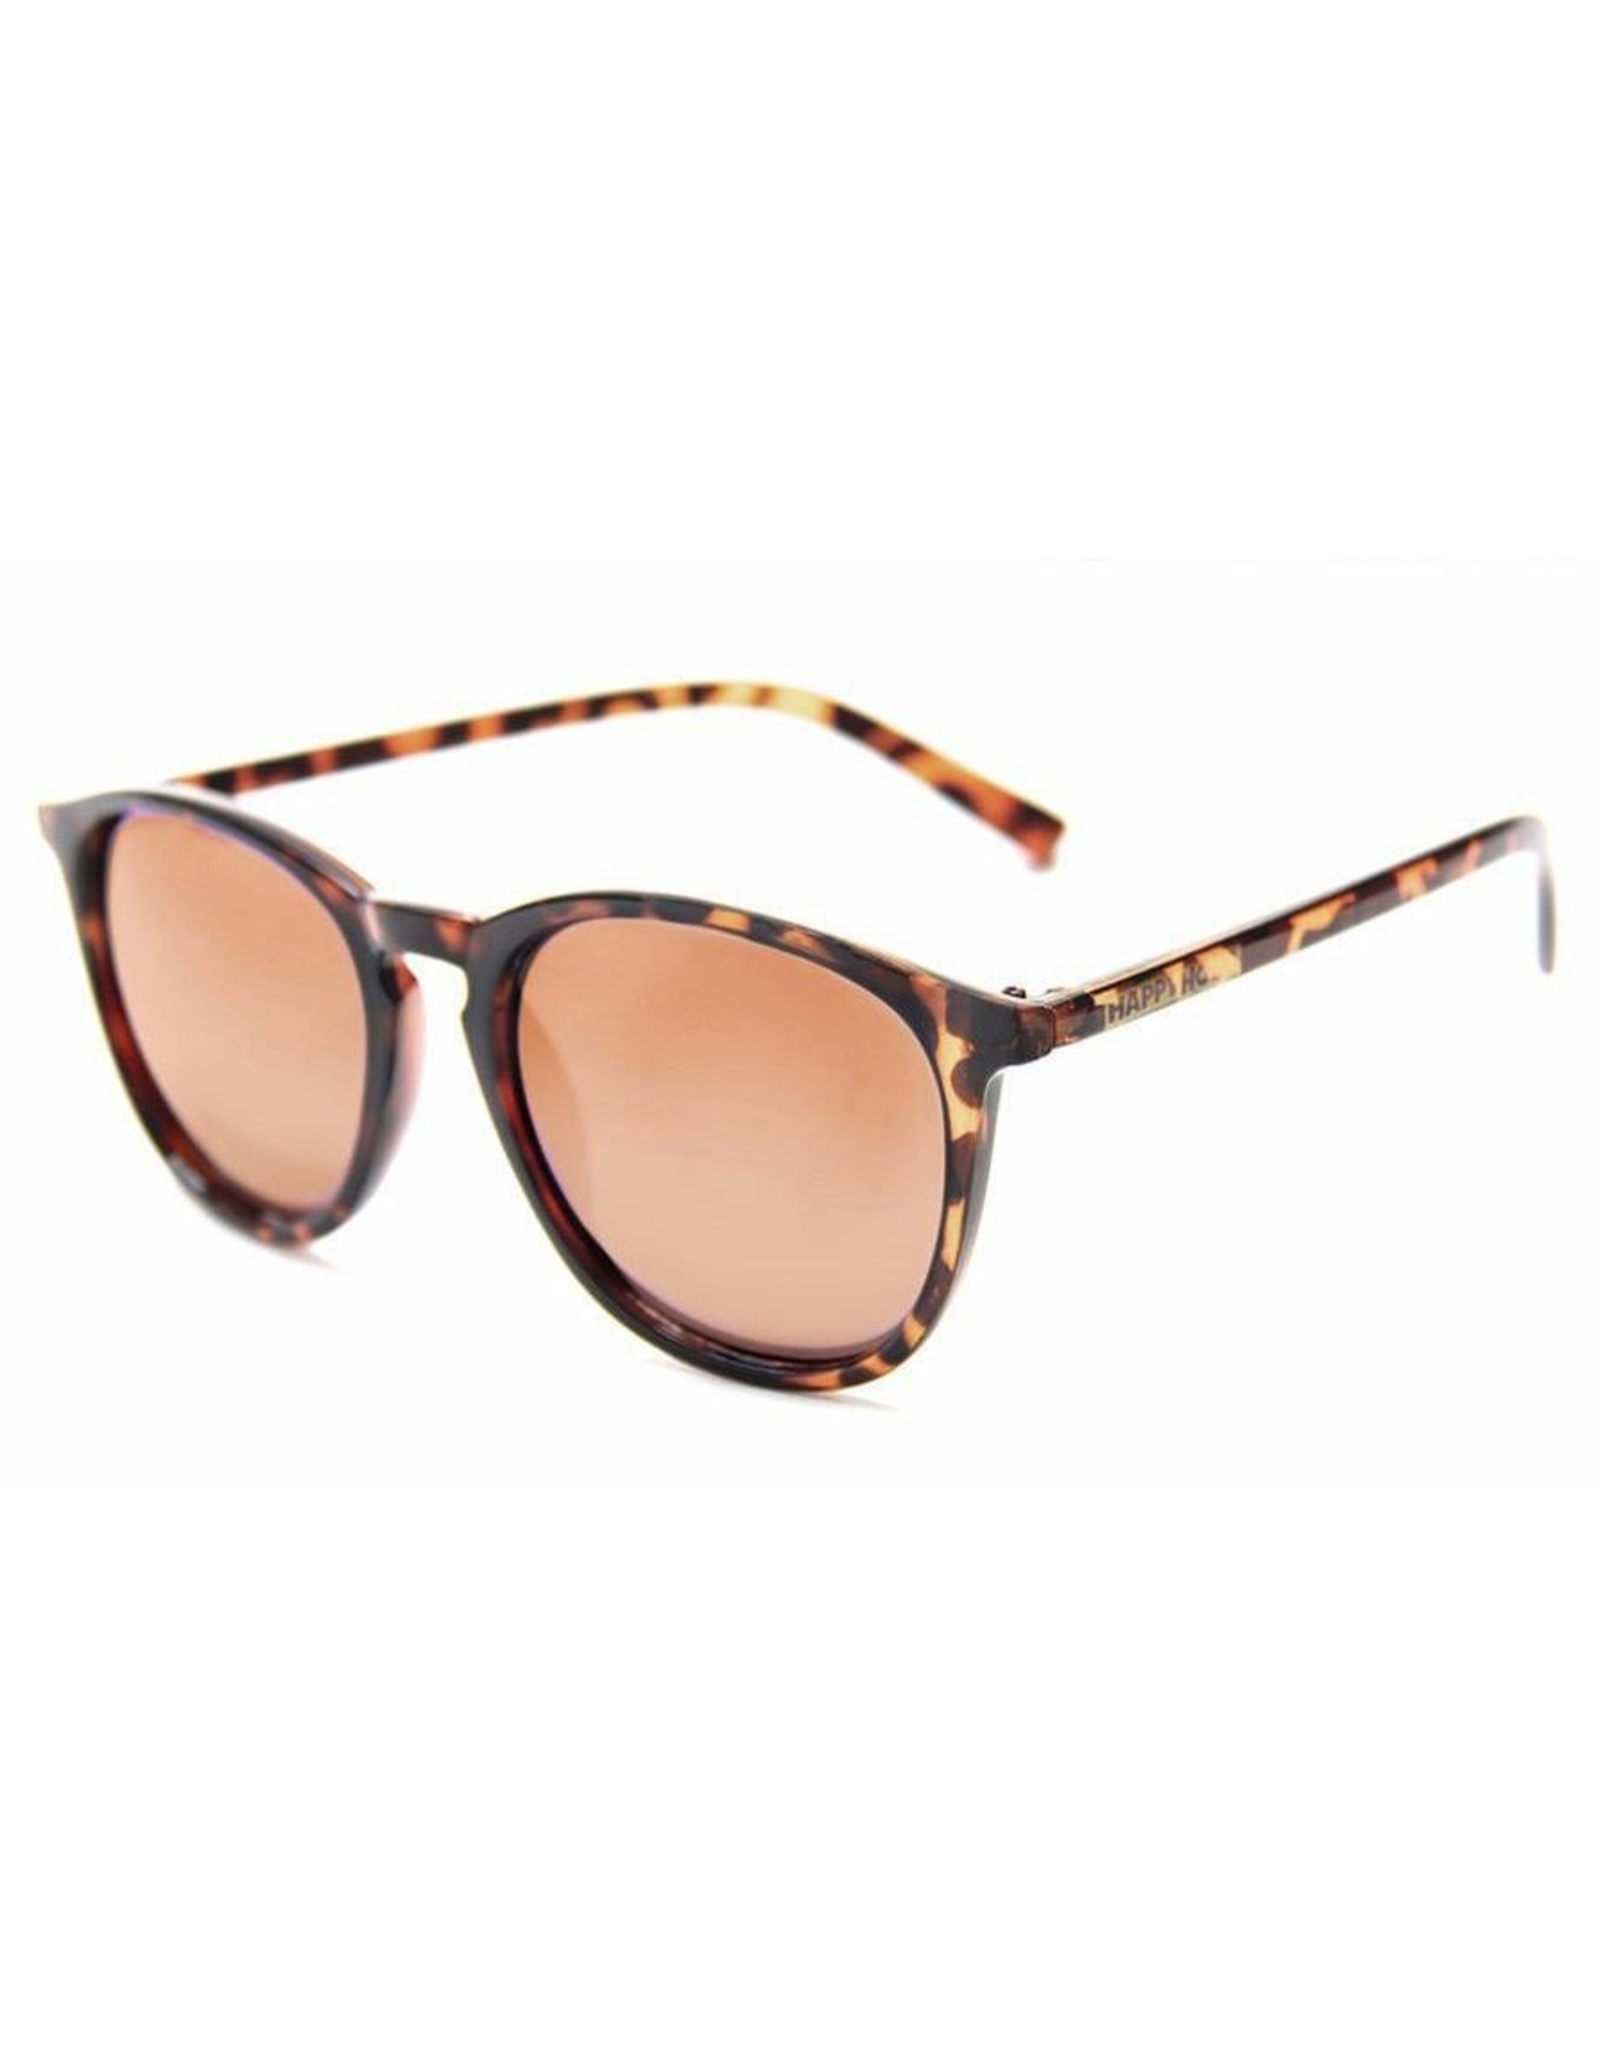 Happy Hour Flap Jacks Sunglasses - Frosted Tortoise/Amber